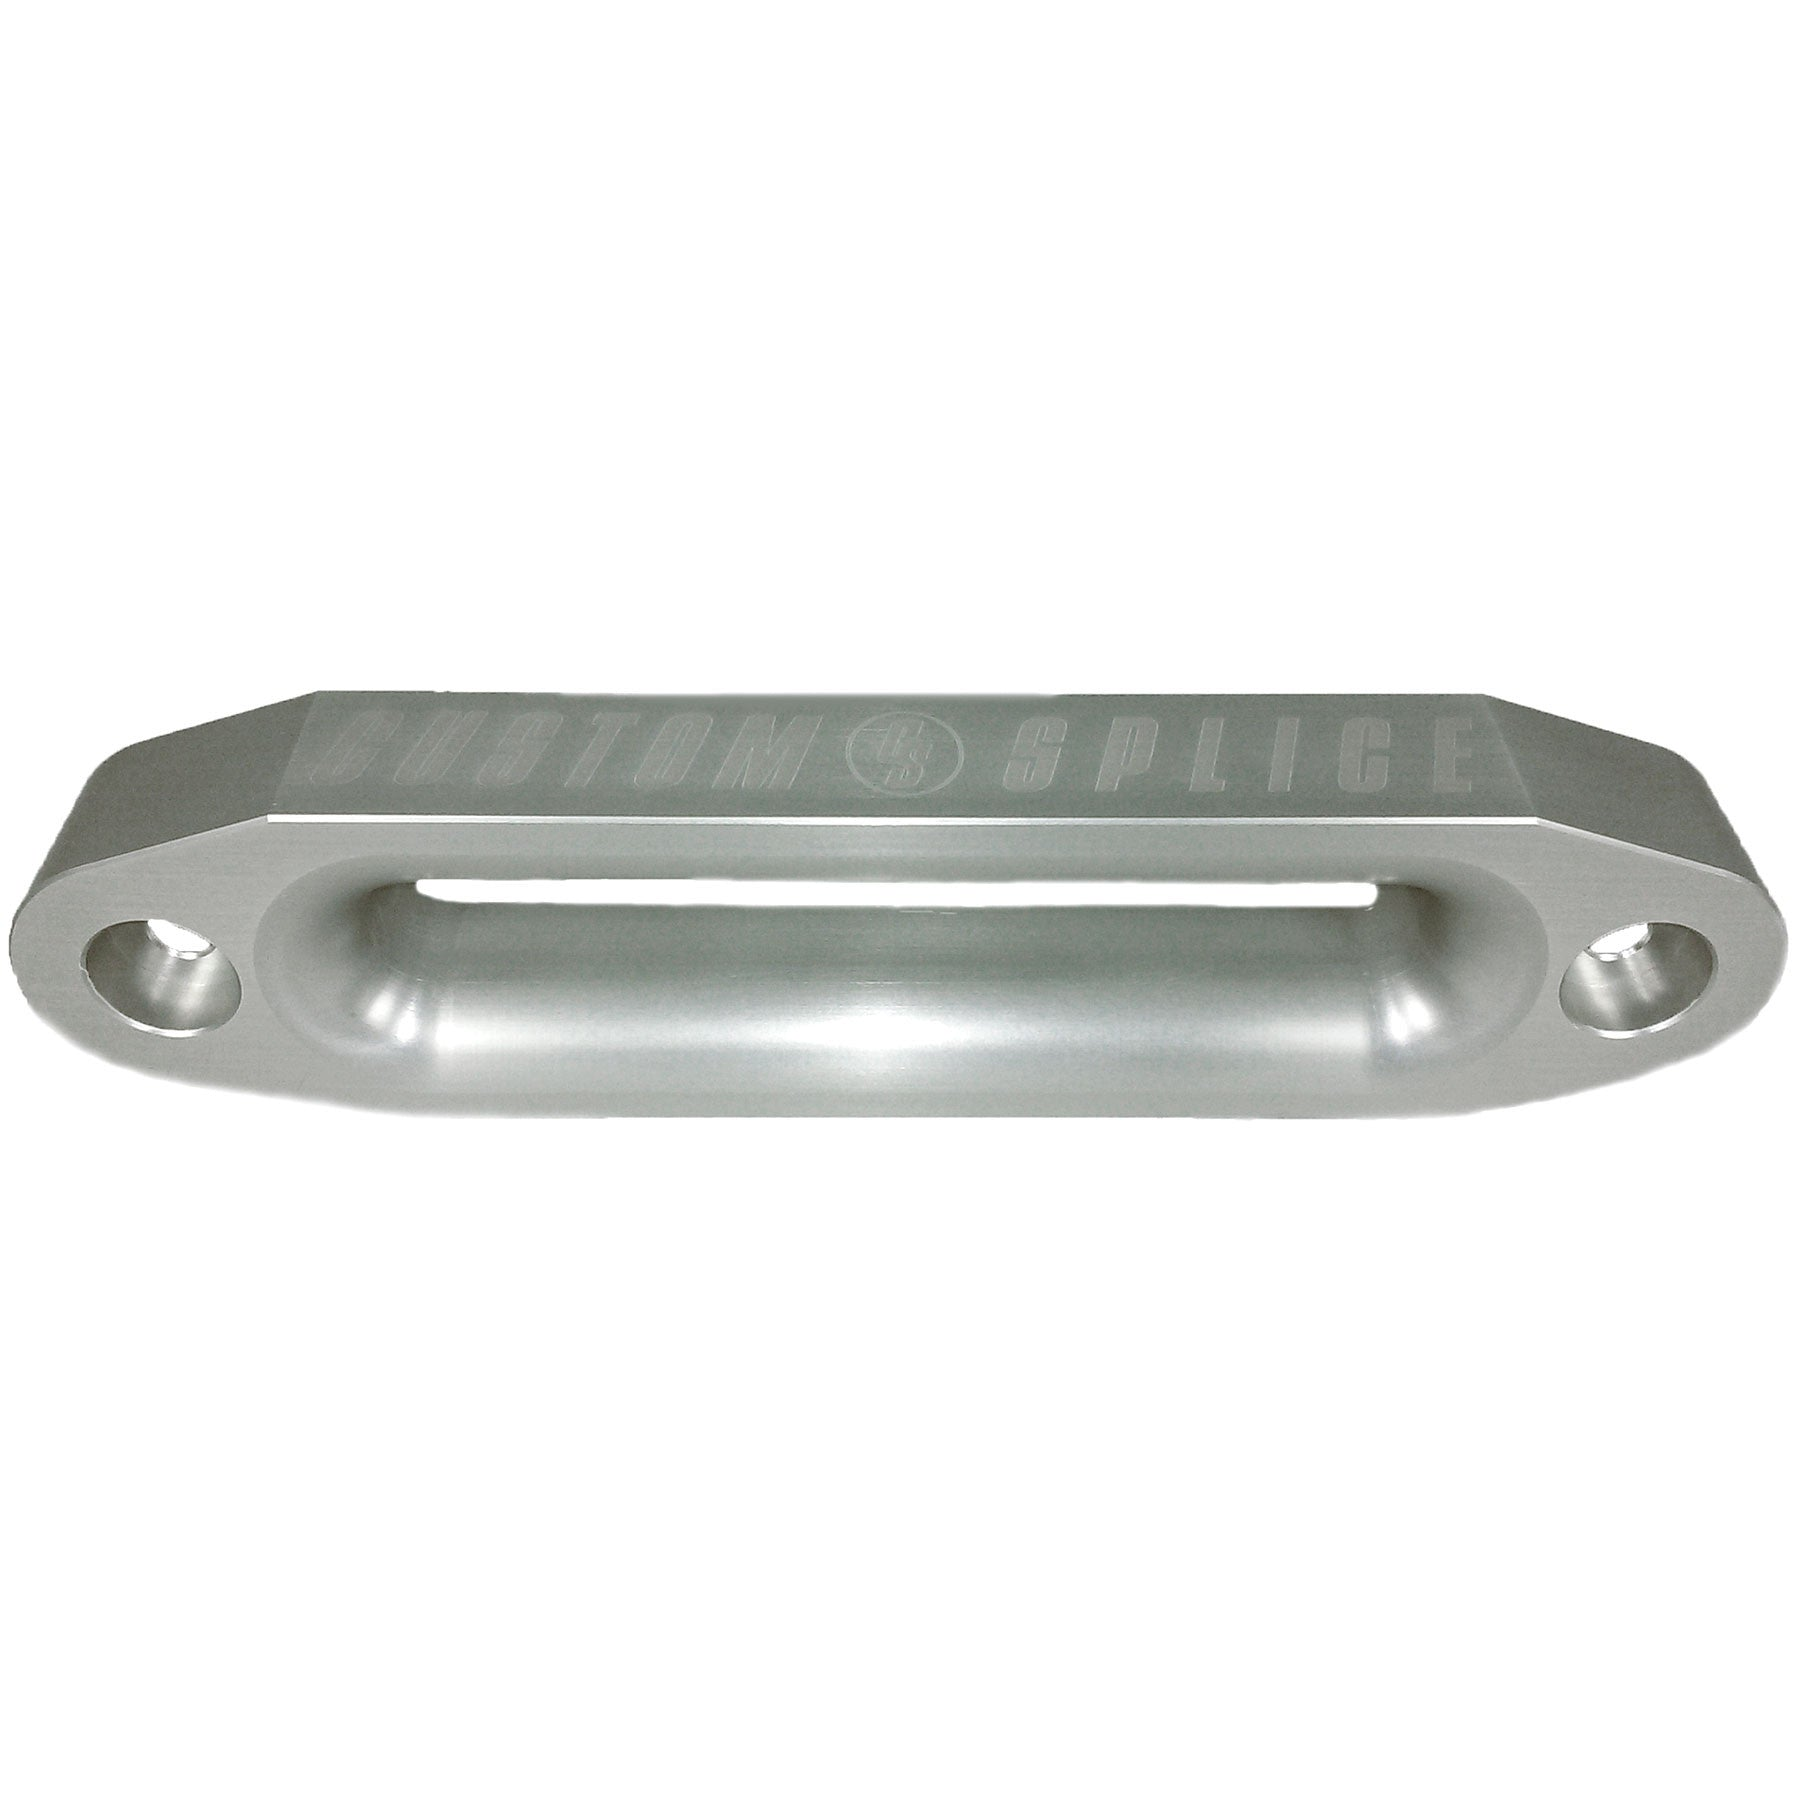 "Silver 10"" Double Thick Hawse Fairlead with Large Inside Radii for Synthetic Winch Rope."